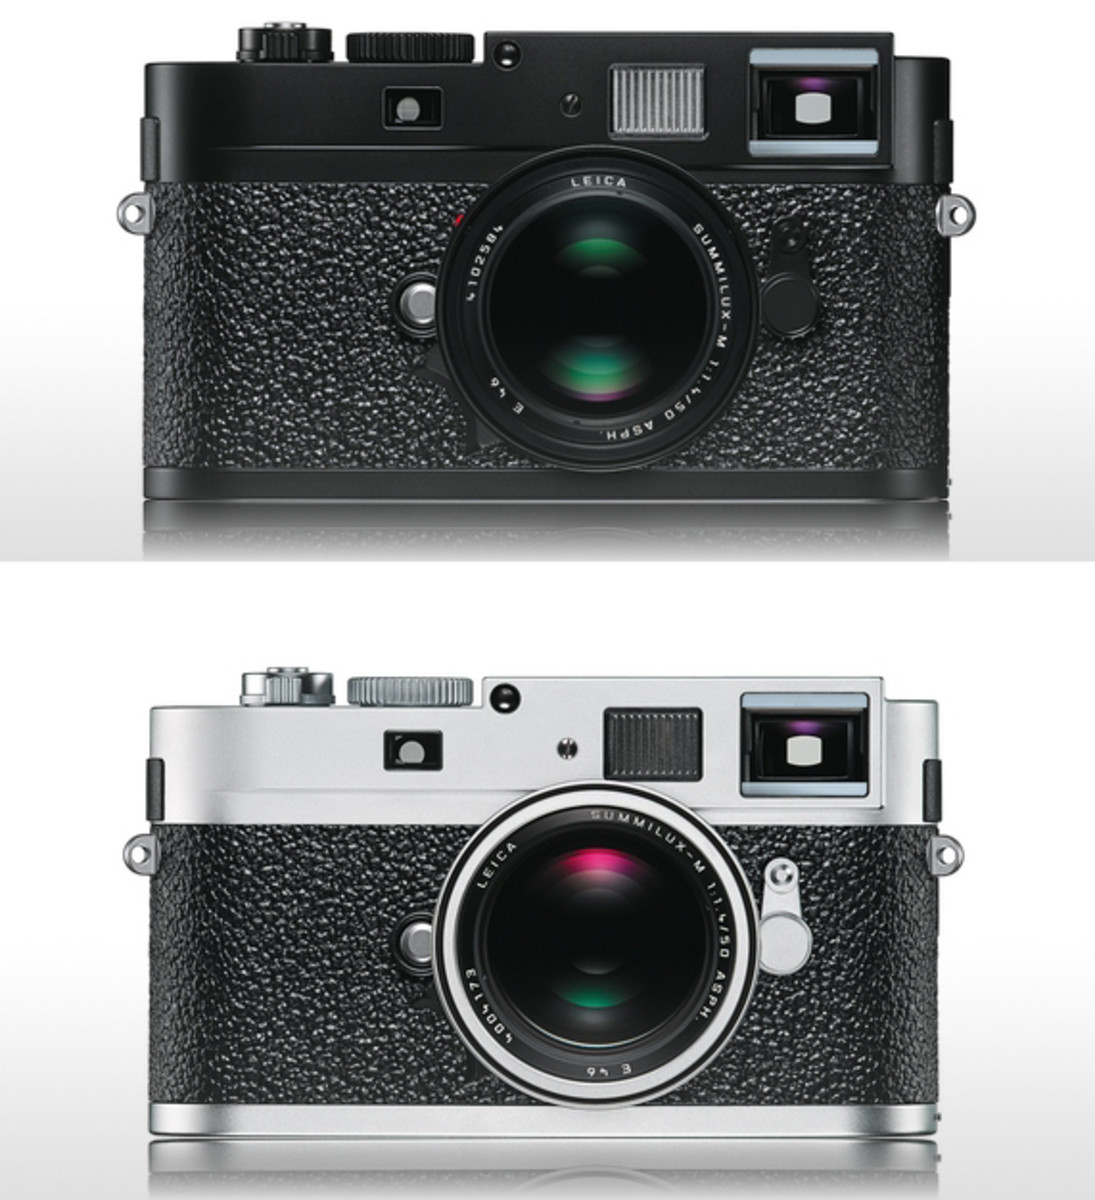 Leica M9-P | New Addition To The M9 Digital Camera Line - Freshness Mag